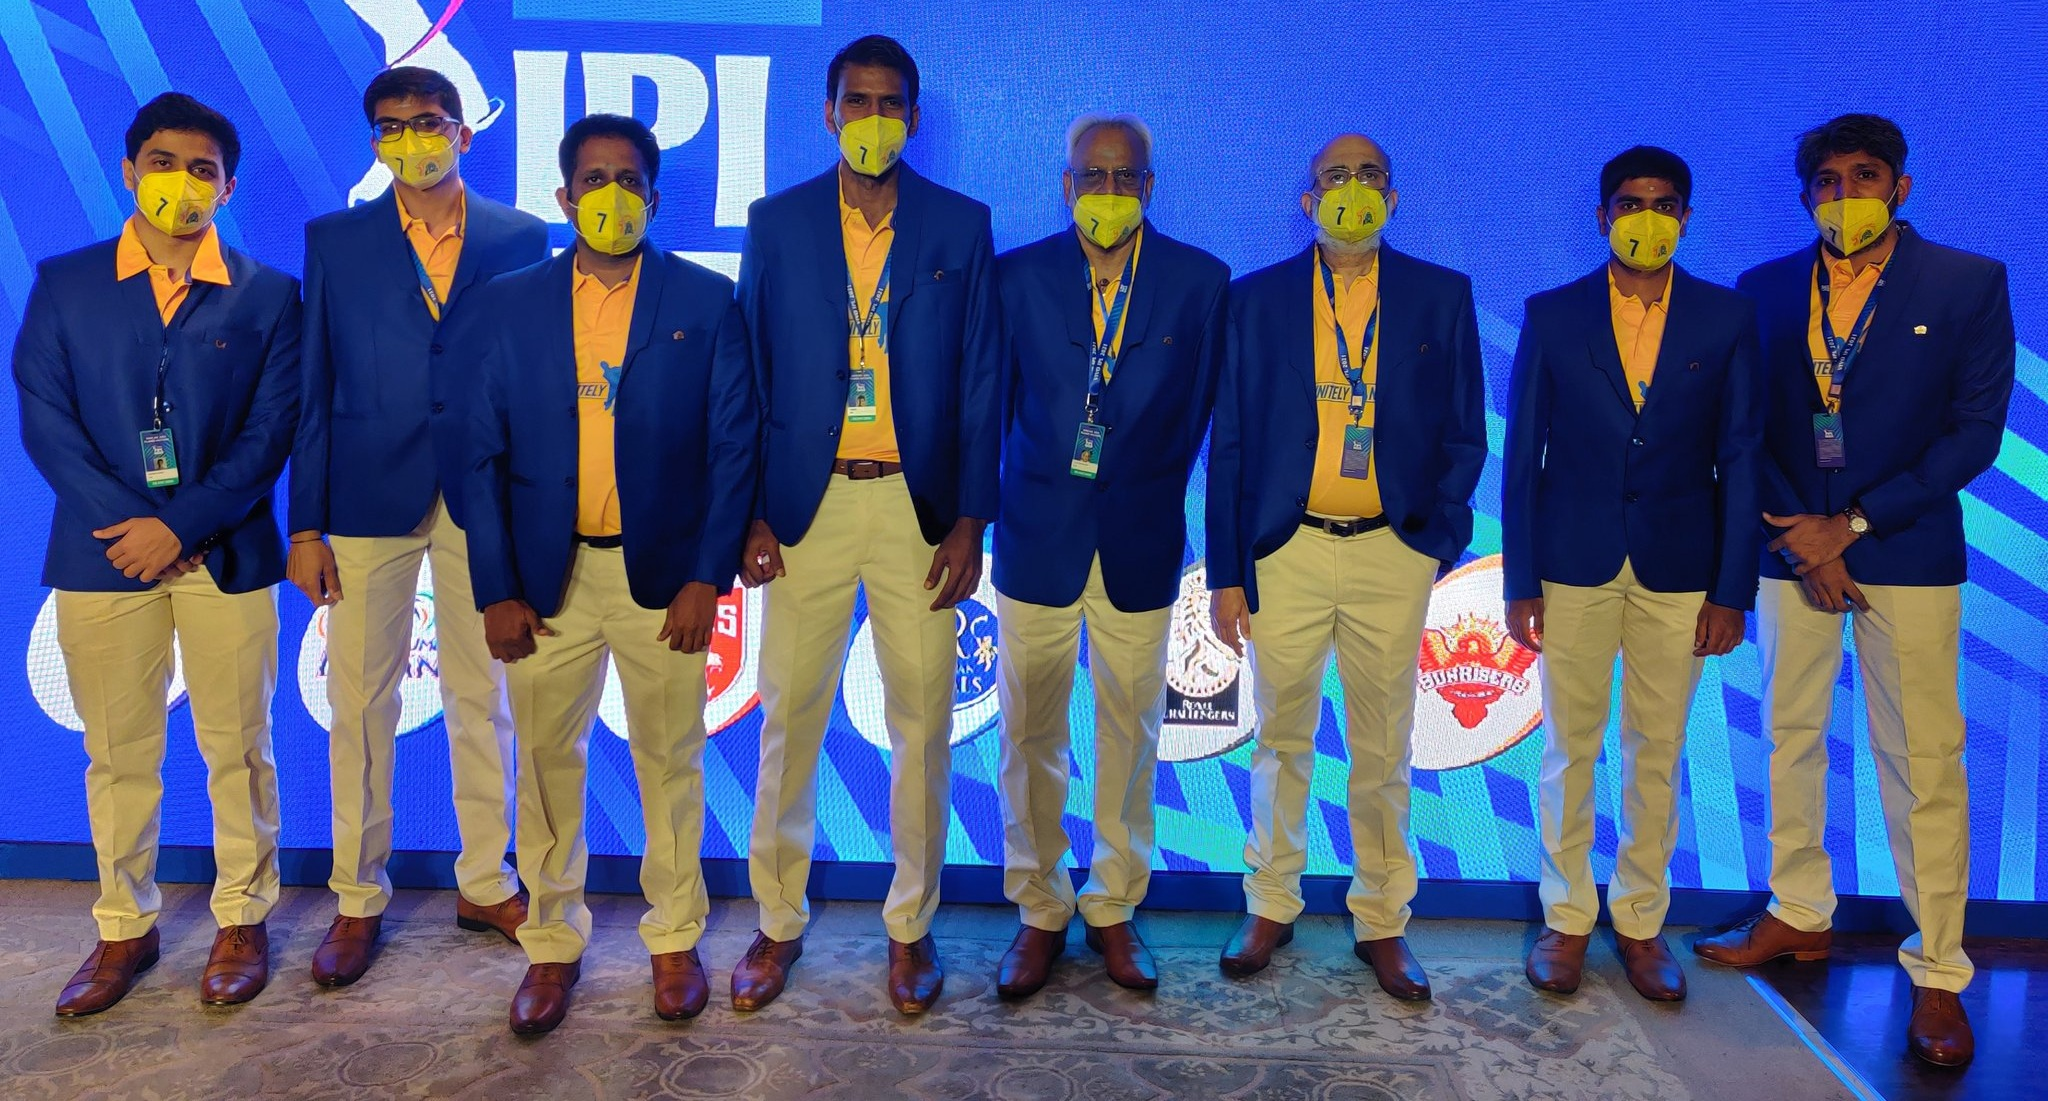 CSK management and officials are seen in special attire at the auction | CSK Twitter